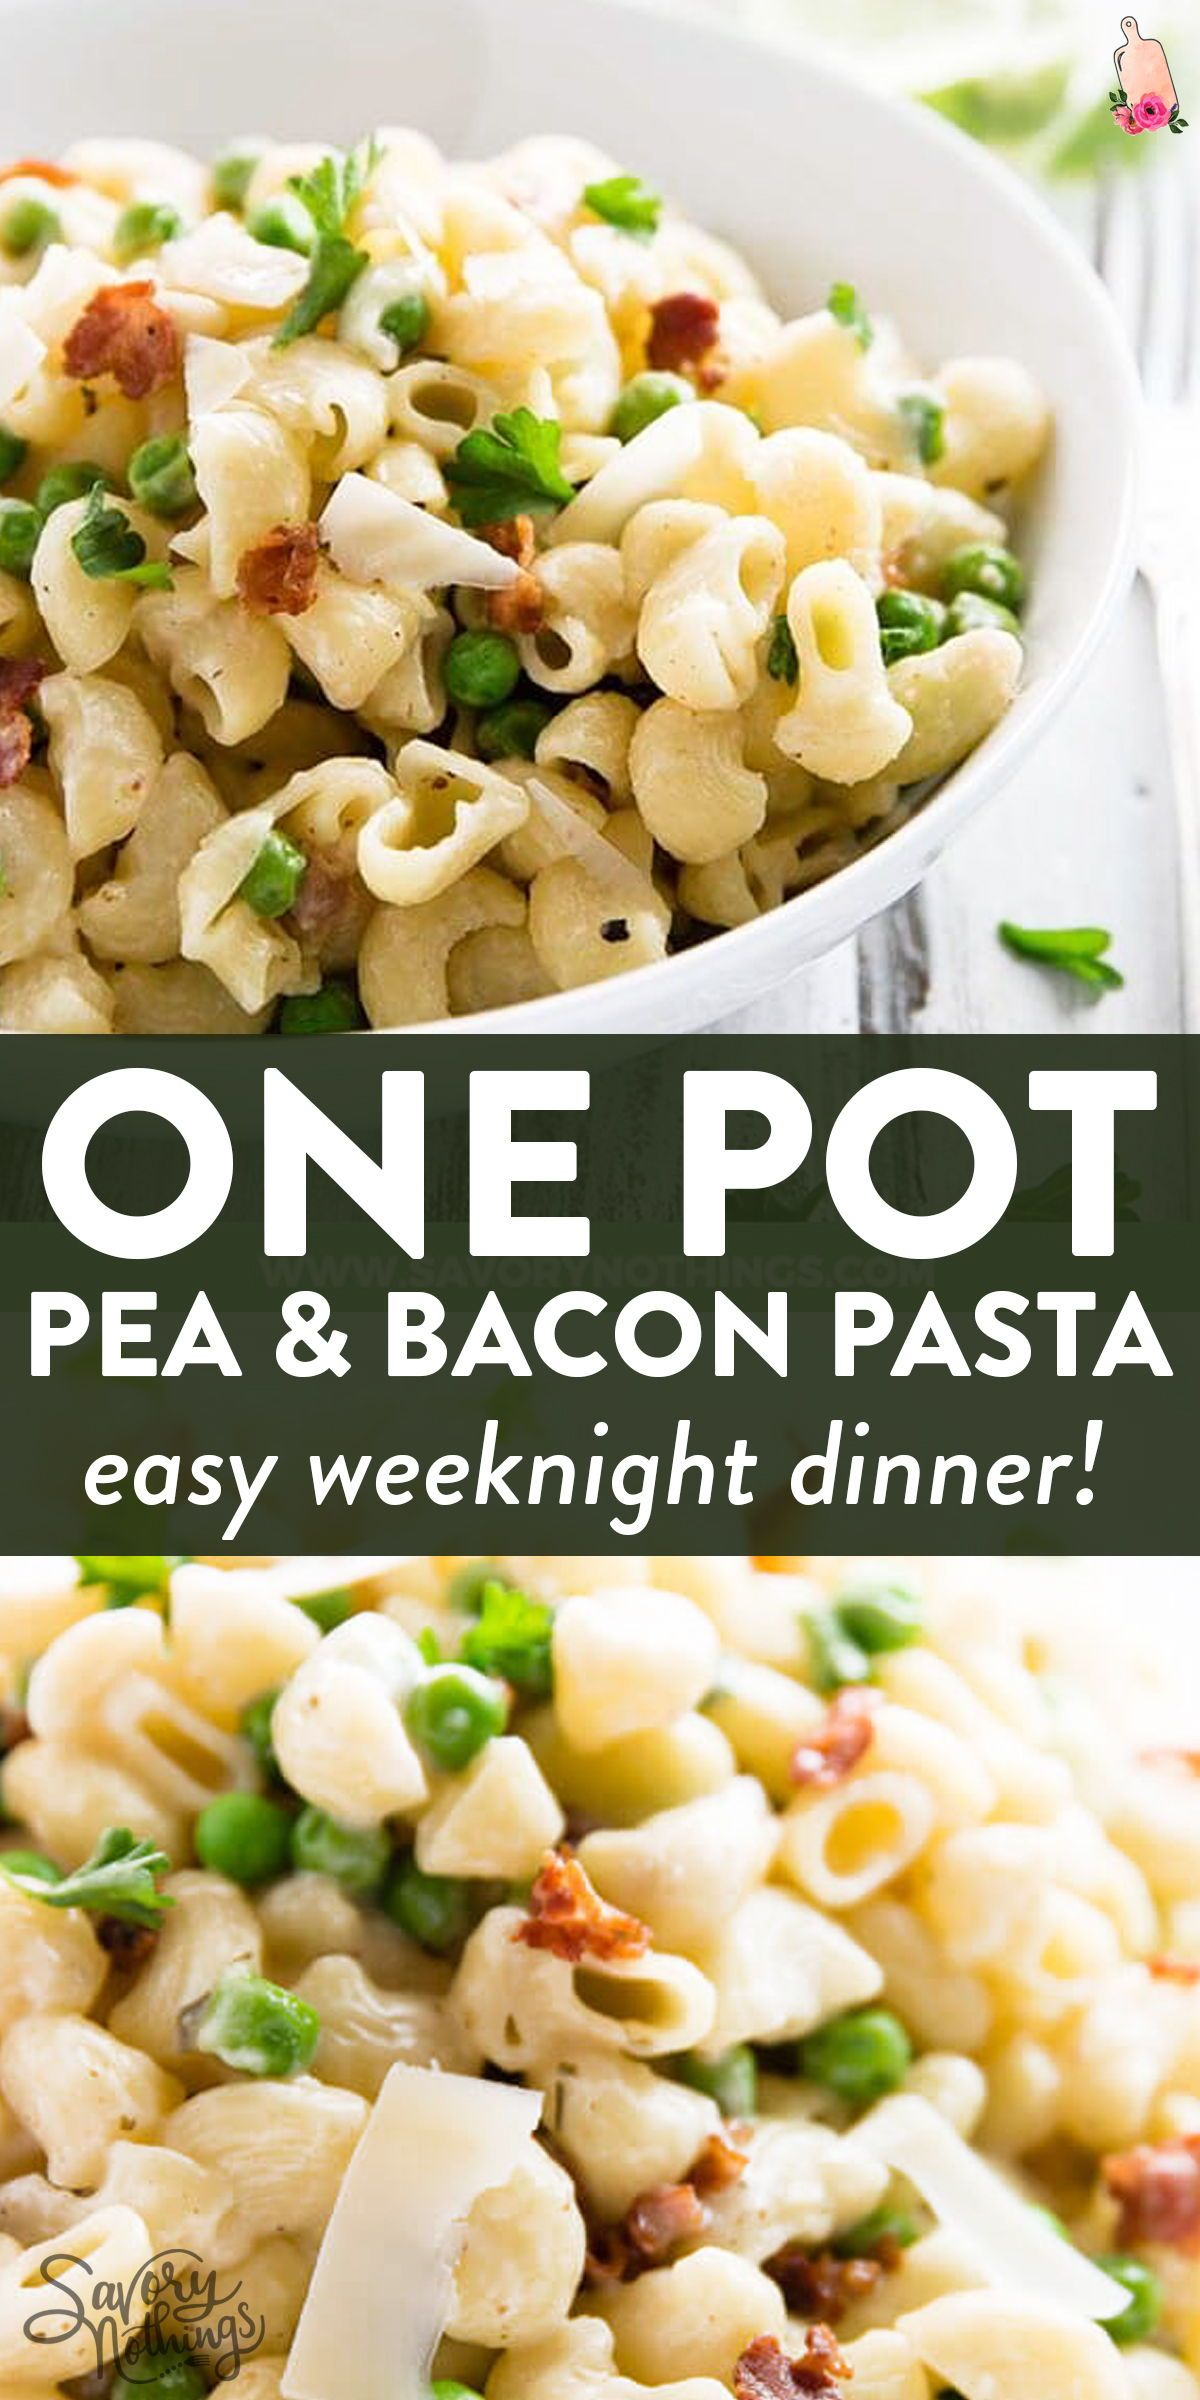 Do You Really Need Another One Pot Pasta Recipe Why Yes You Do